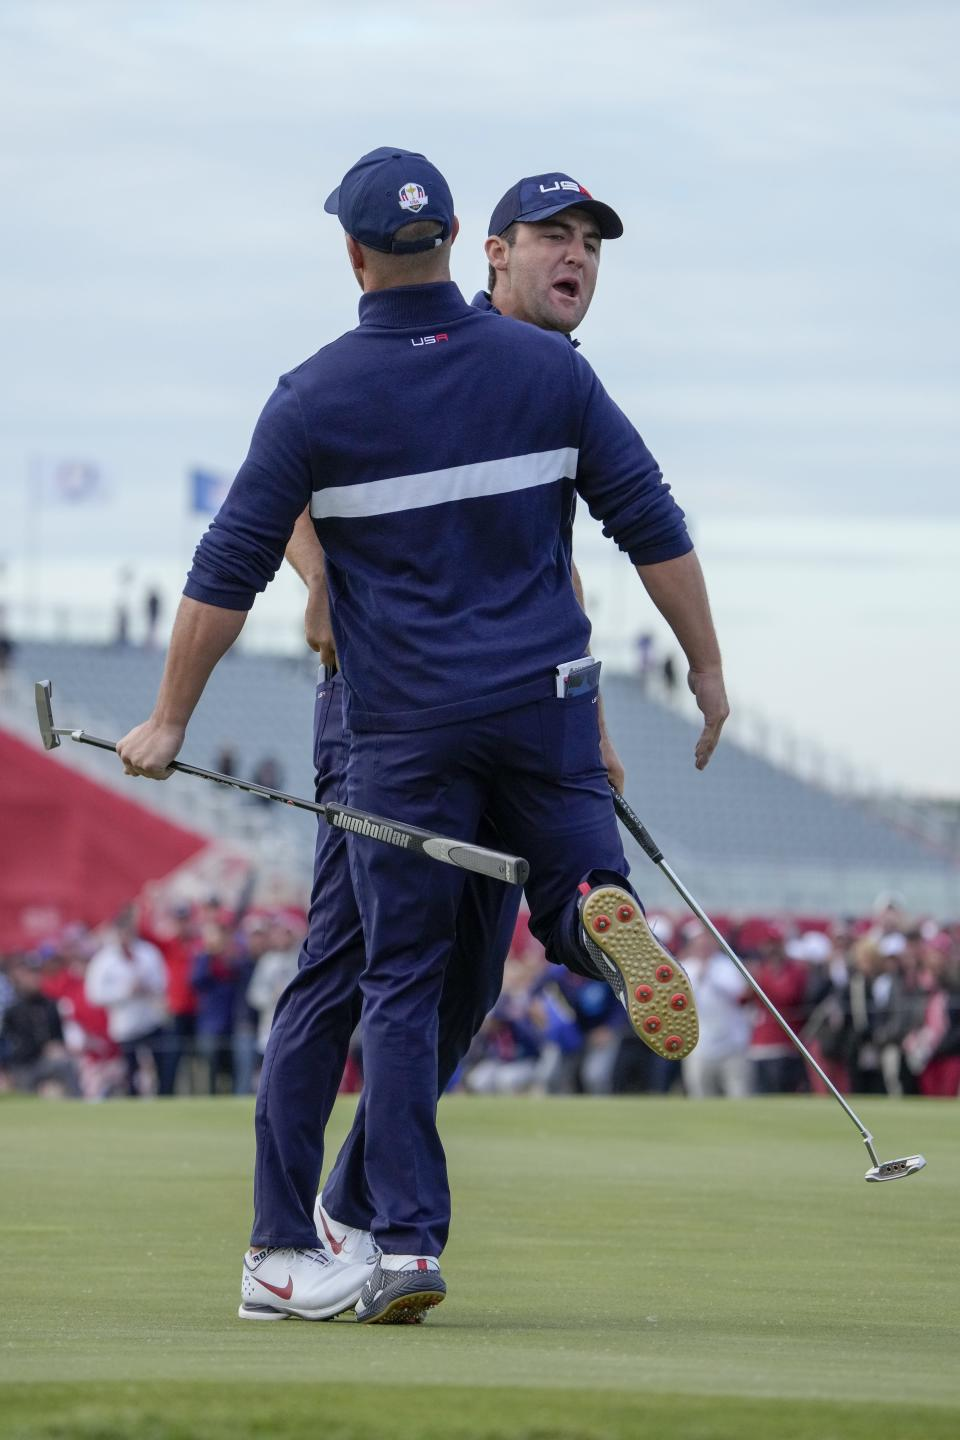 Team USA's Scottie Scheffler celebrates with Team USA's Bryson DeChambeau to making his putt and winning the 15th hole during a four-ball match the Ryder Cup at the Whistling Straits Golf Course Saturday, Sept. 25, 2021, in Sheboygan, Wis. (AP Photo/Ashley Landis)